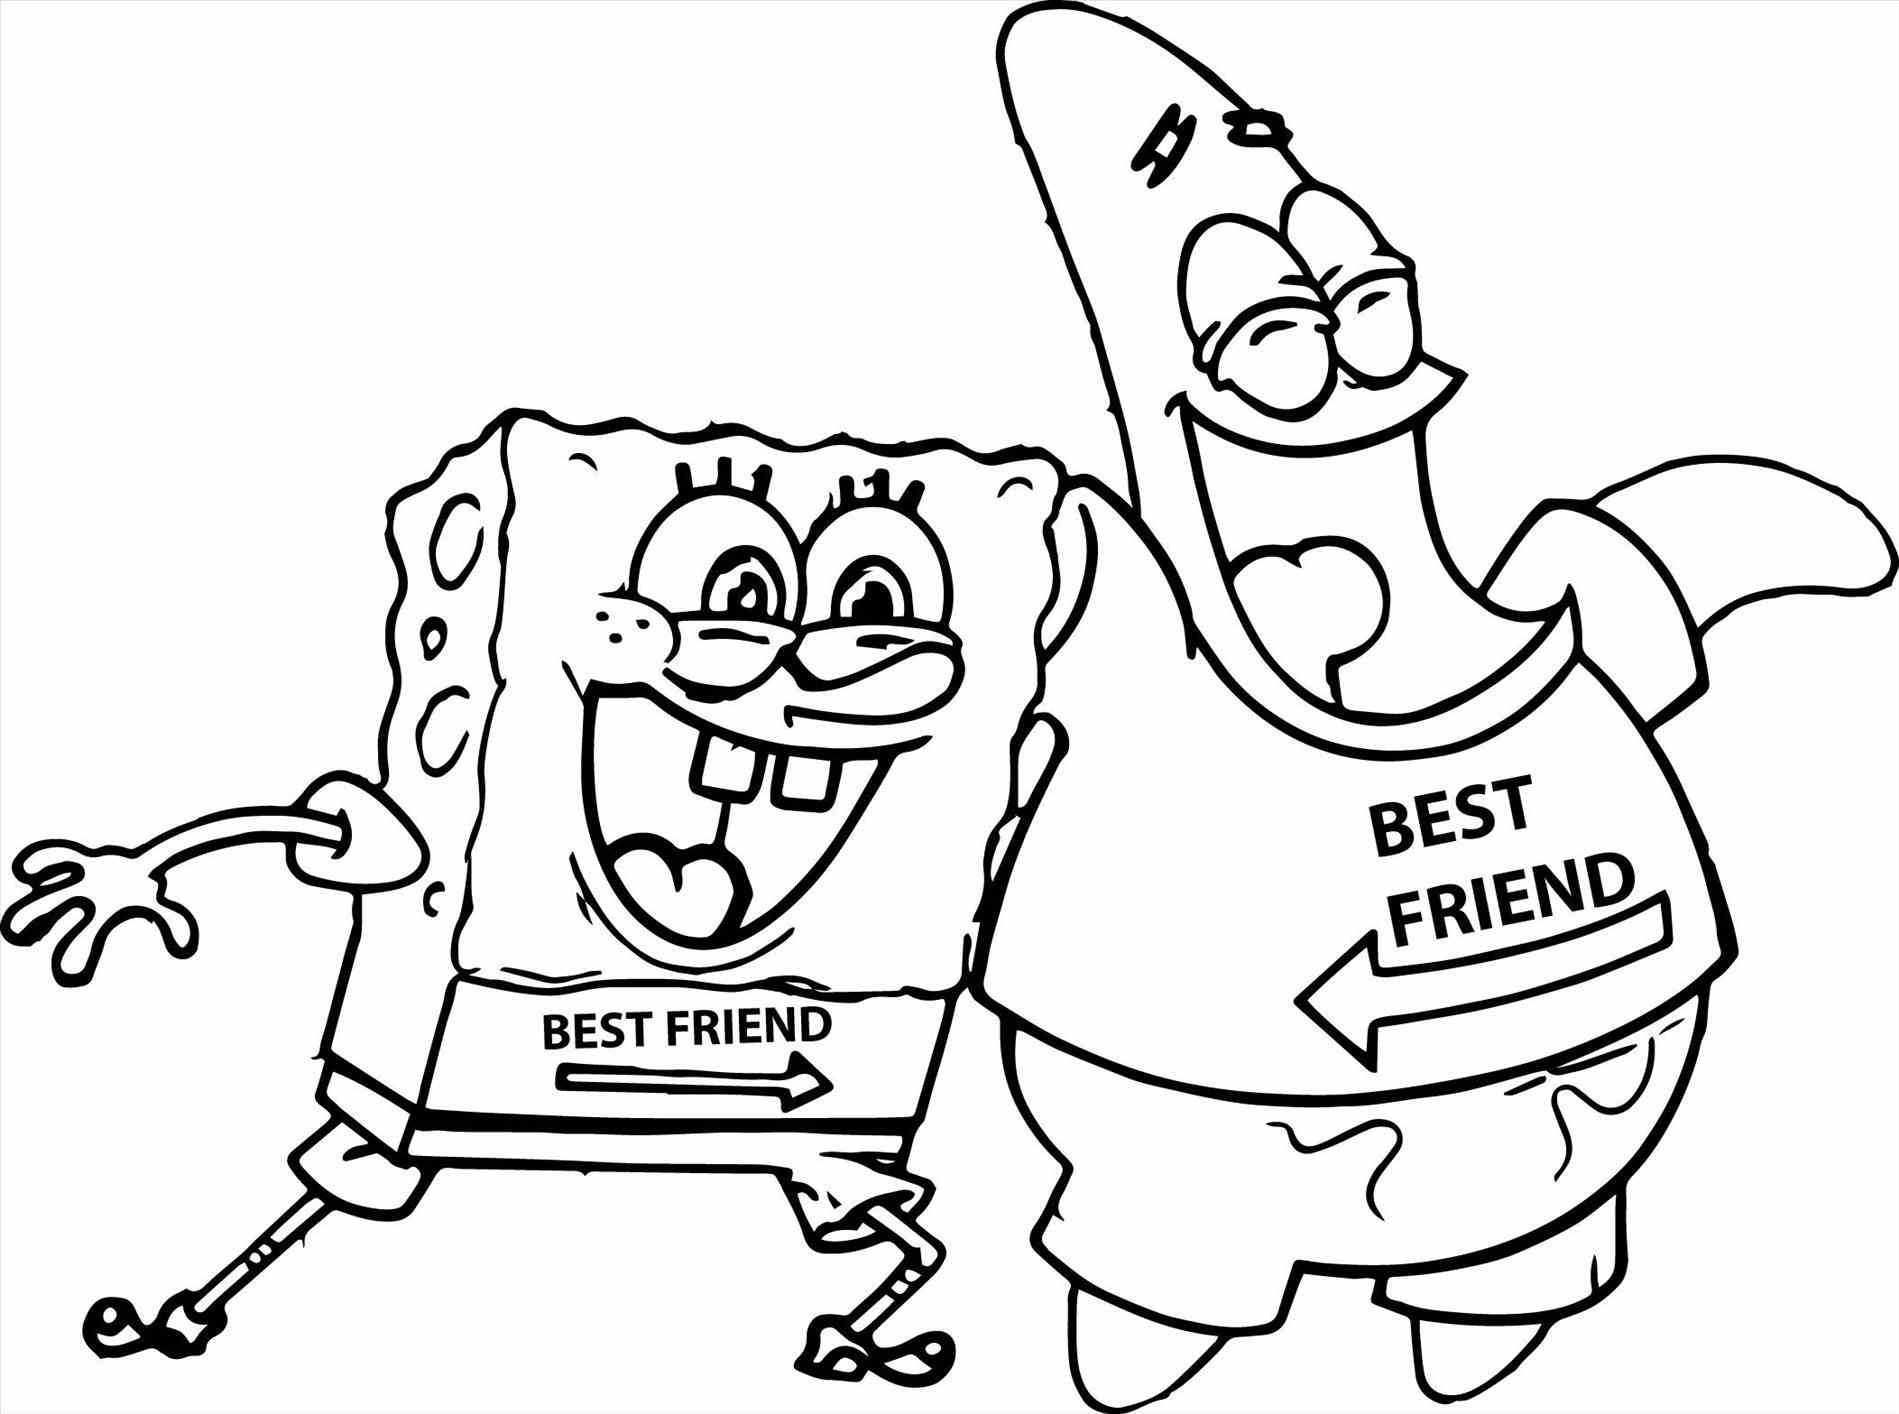 1899x1414 Spongebob Squarepants And Patrick Coloring Pages Spongebob